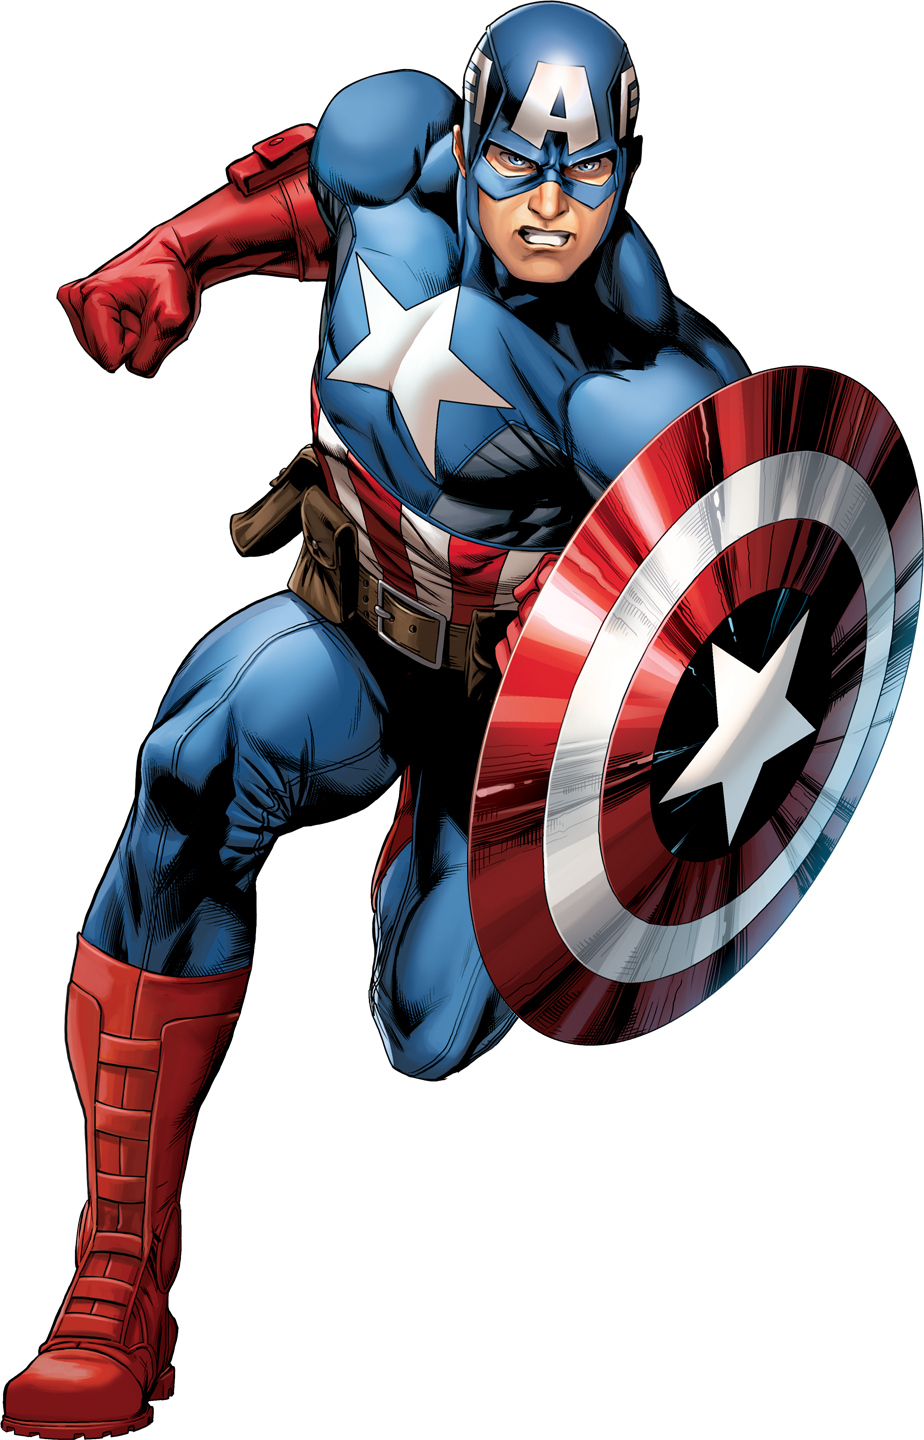 Vintage comic book superhero clipart clipart royalty free library http://www.signupuk.co.uk/image/catalog/captain-main.png | Comics ... clipart royalty free library